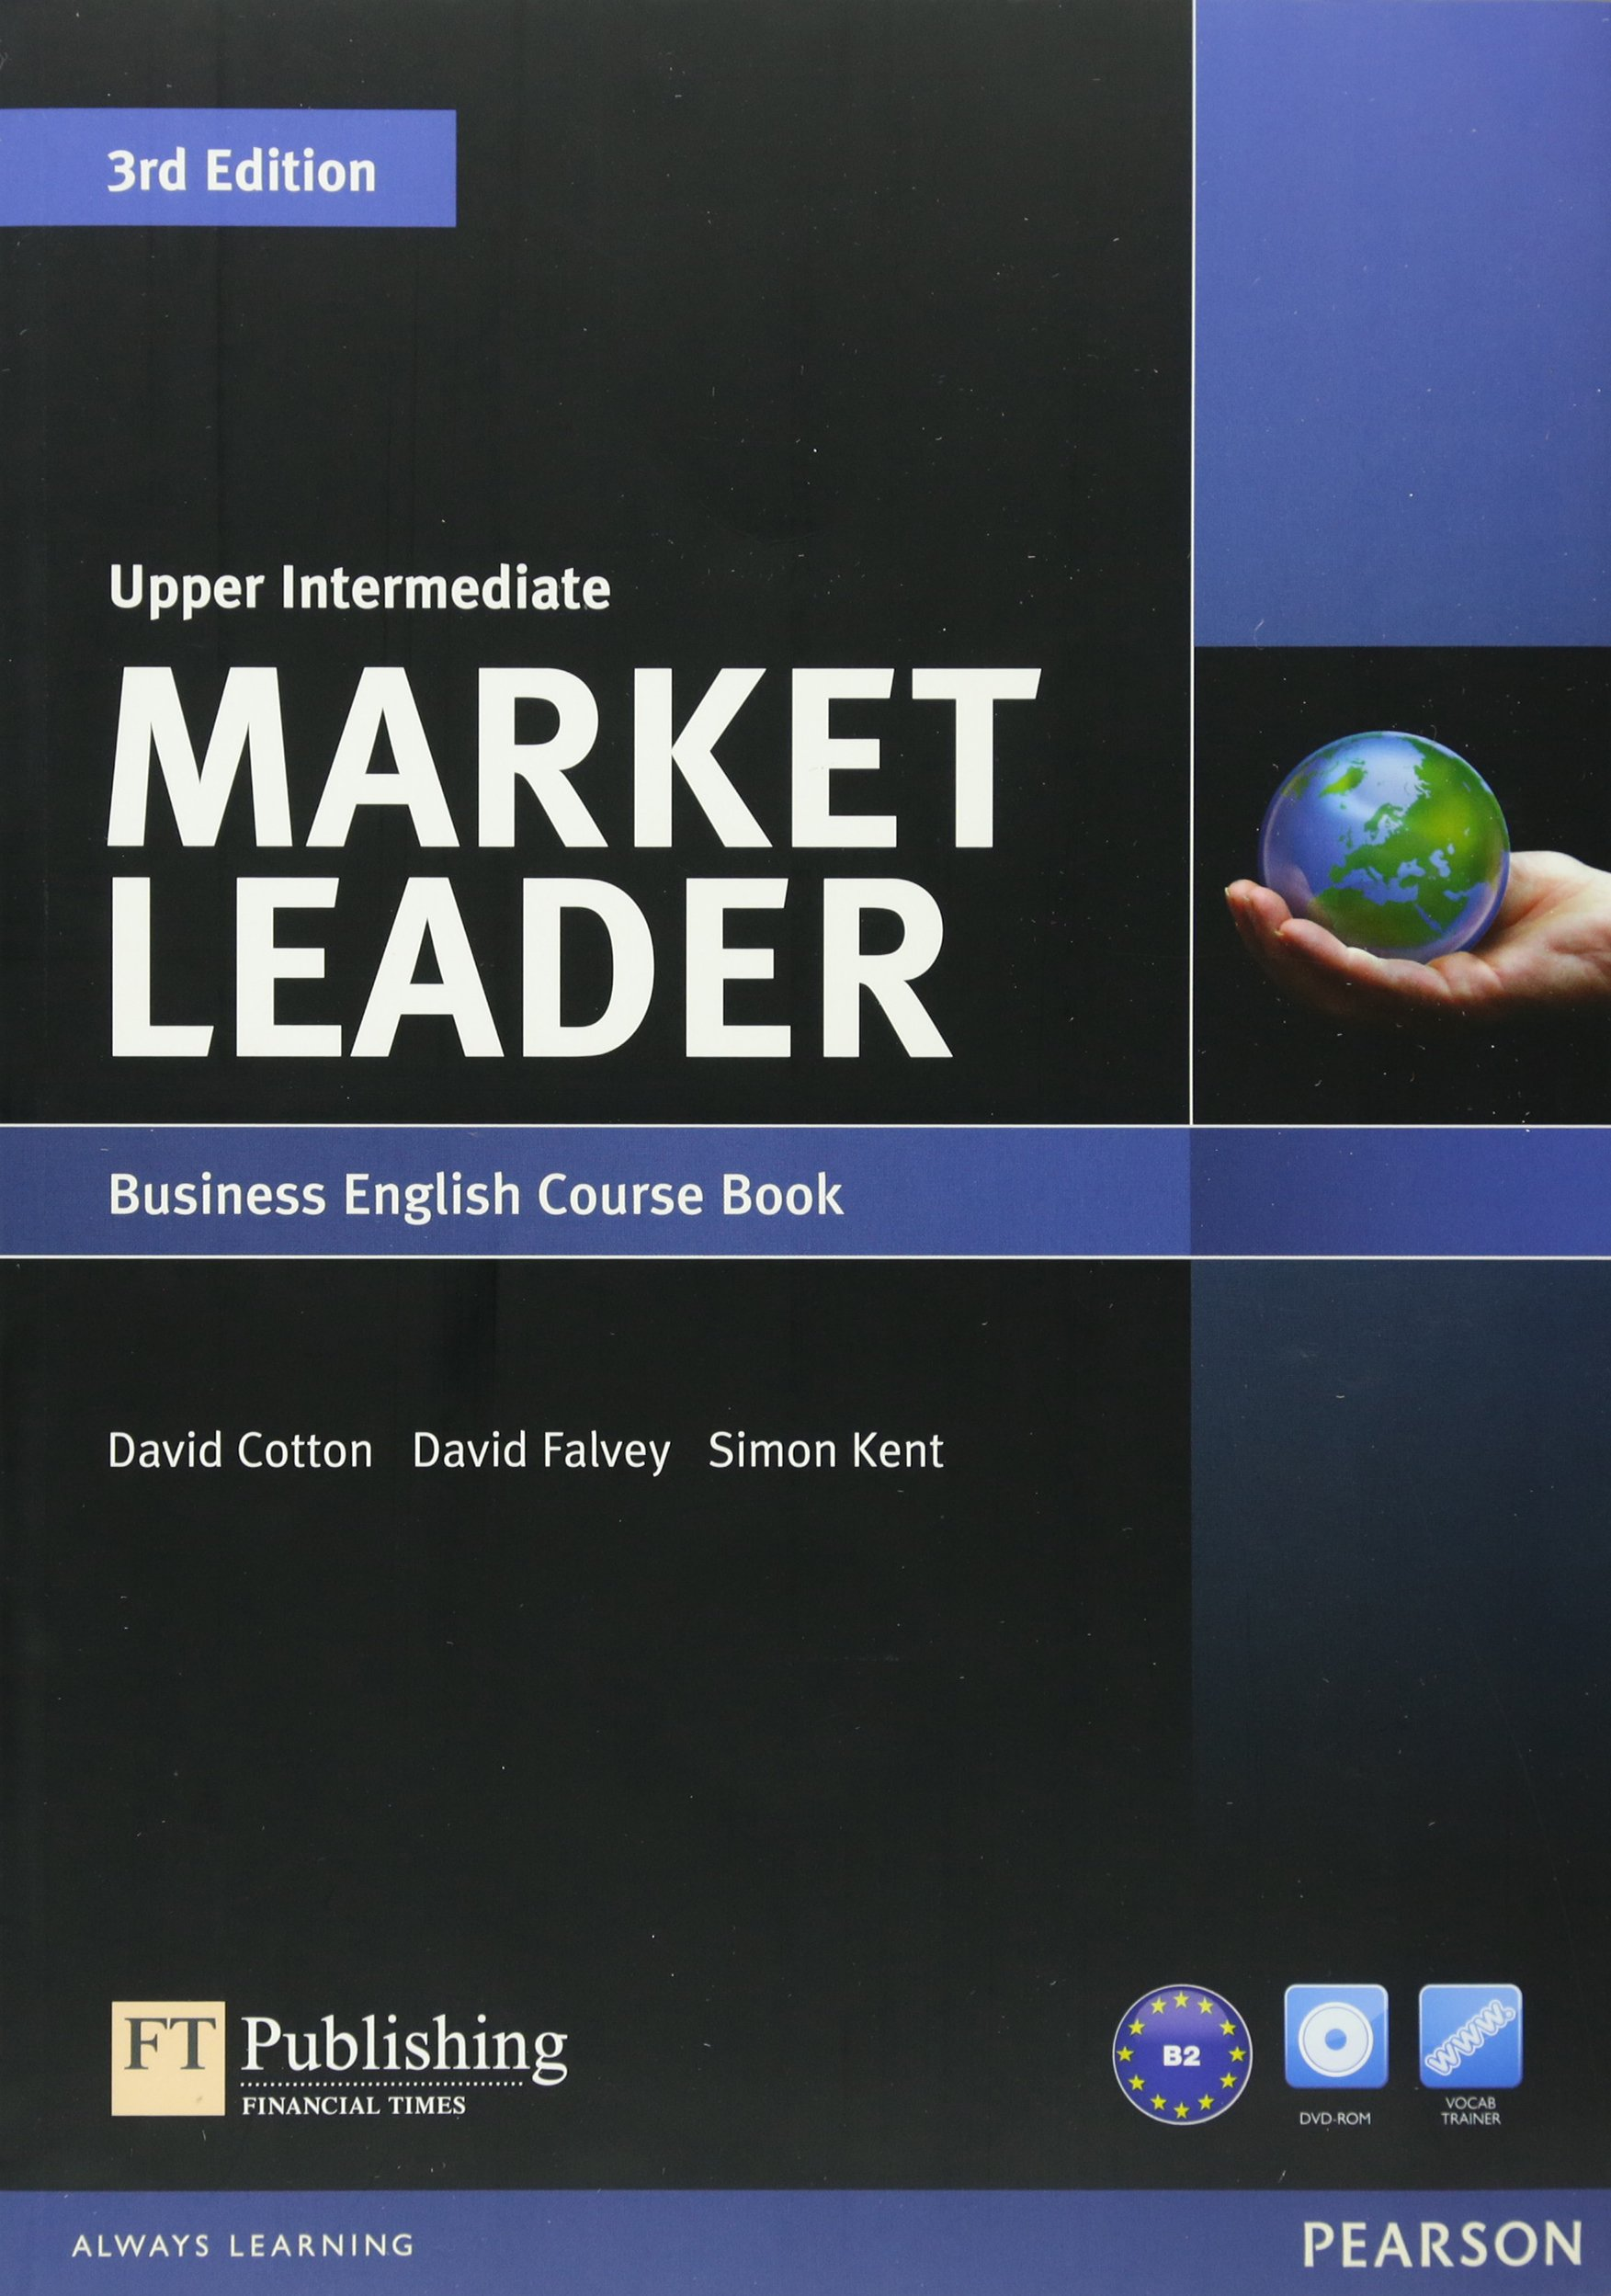 Market Leader Book